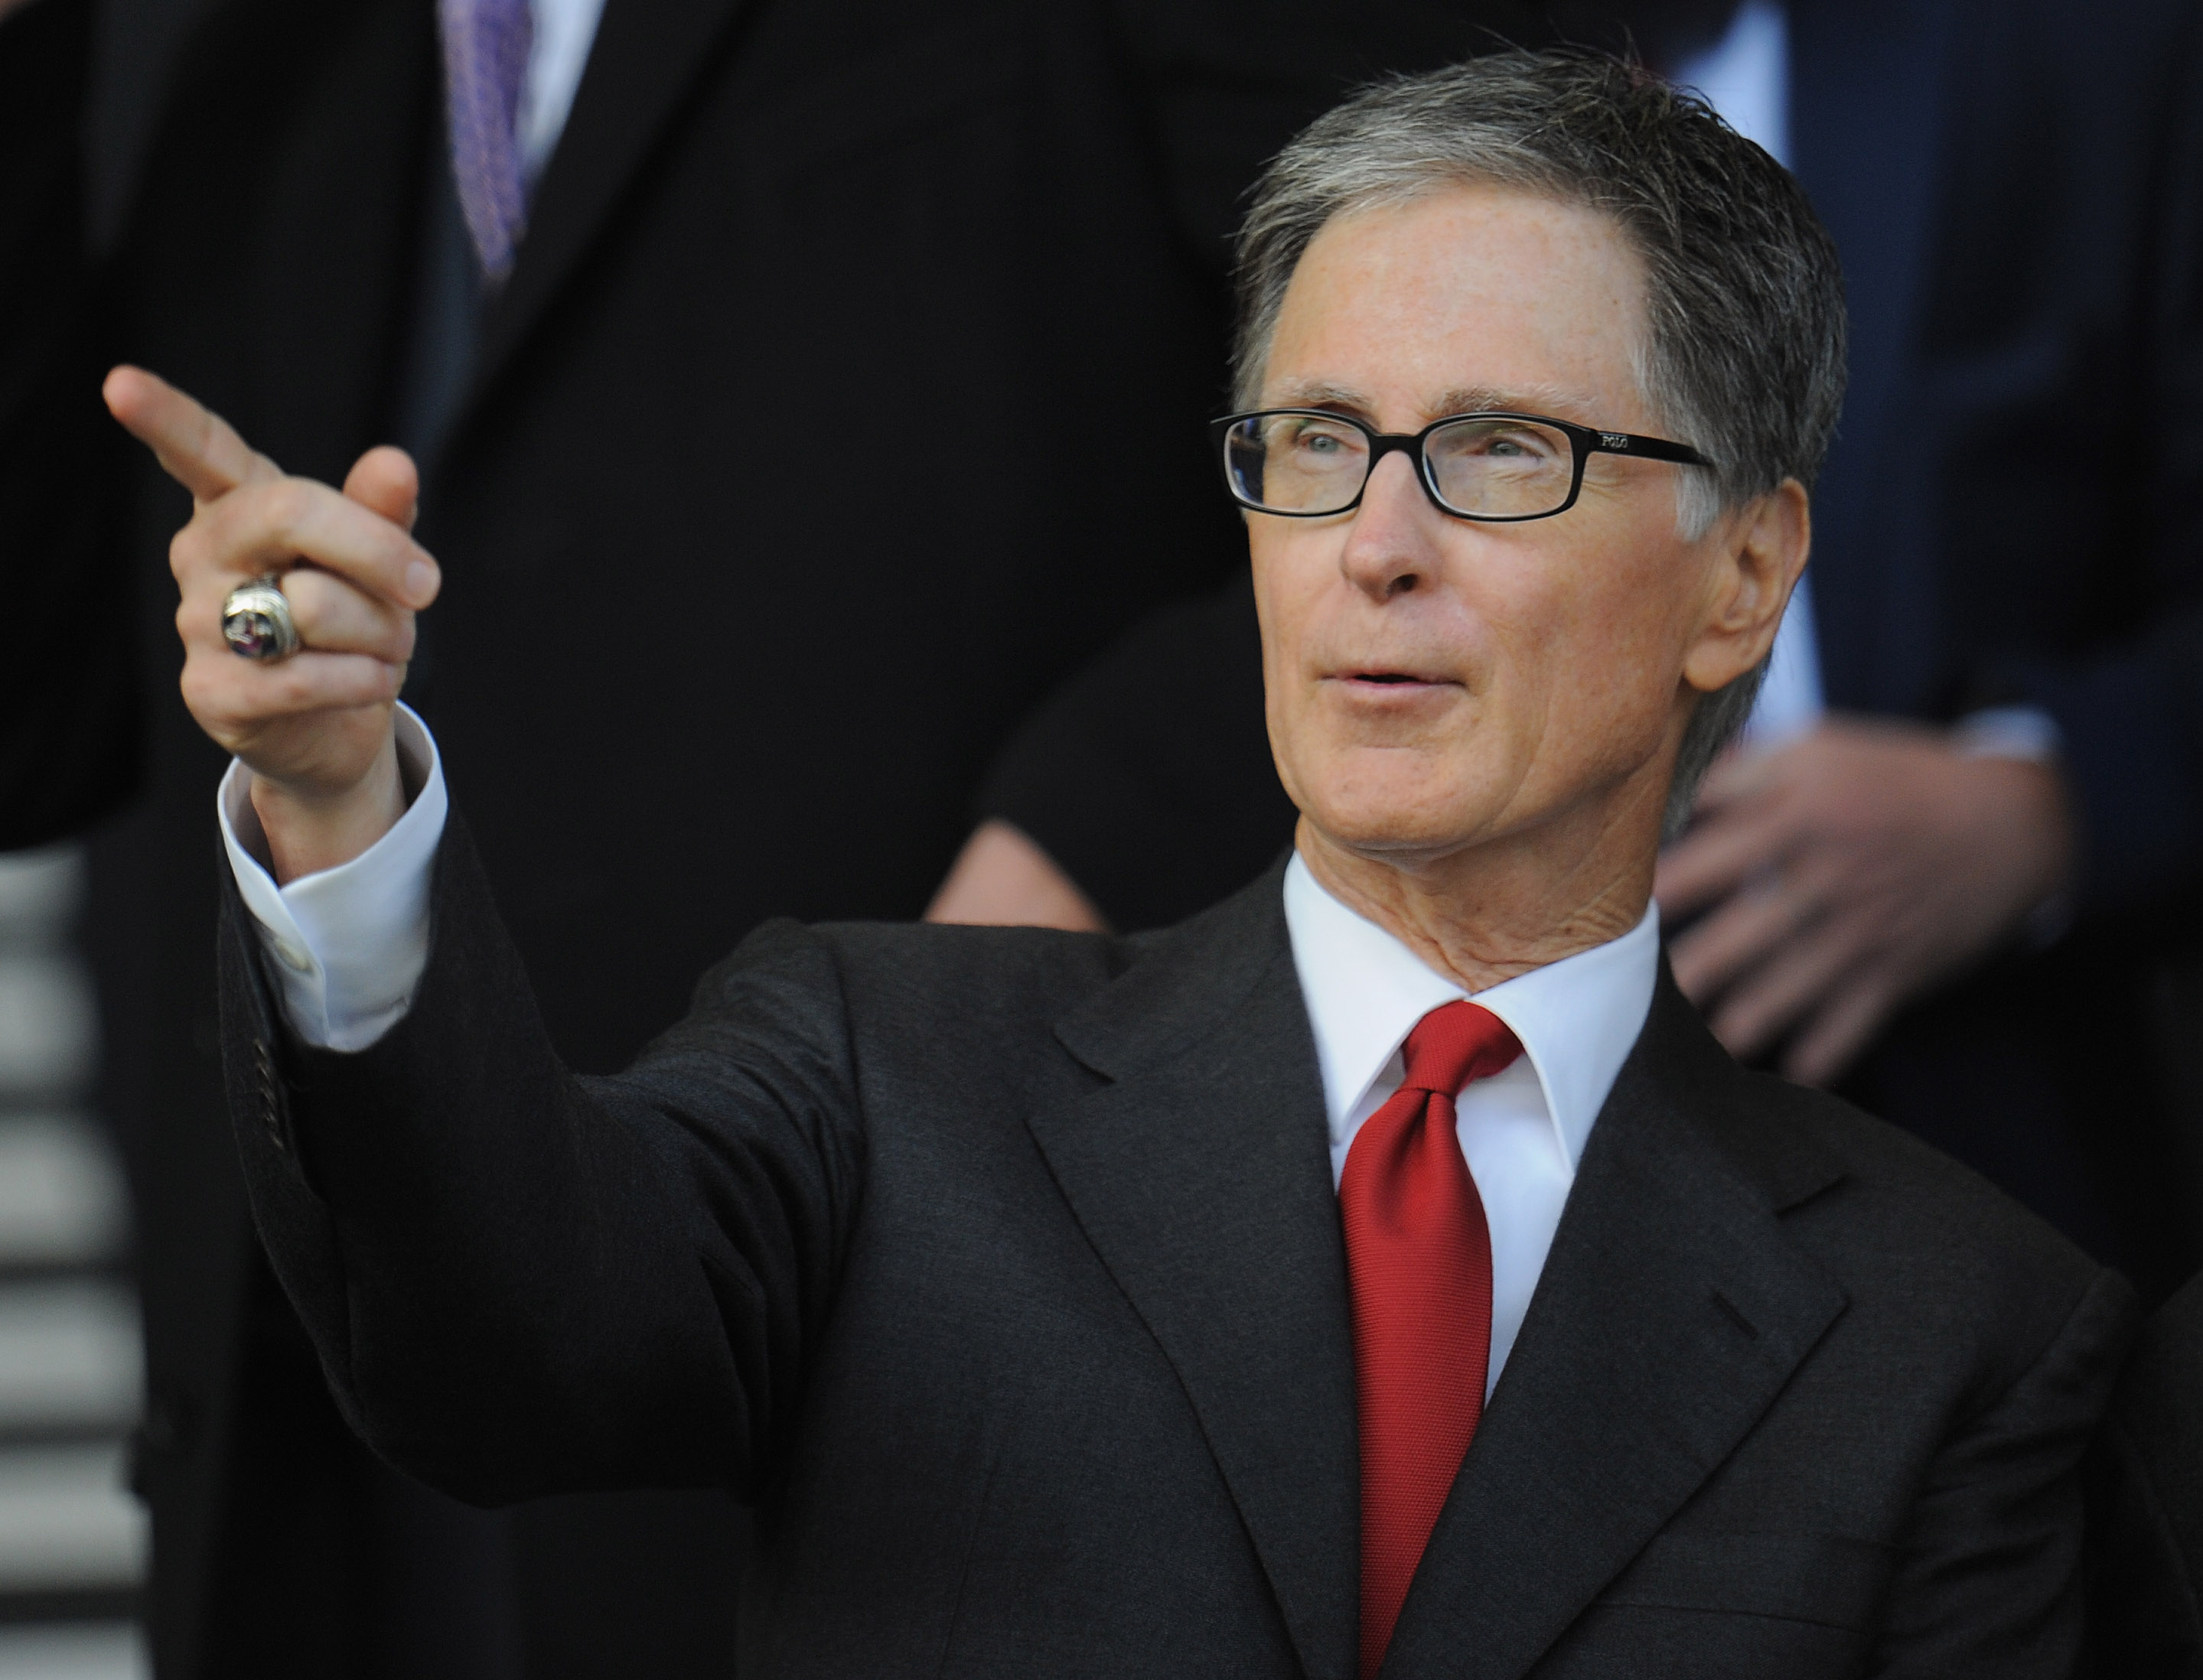 LIVERPOOL, ENGLAND - OCTOBER 17:  Liverpool owner John W Henry looks on during the Barclays Premier League match between Everton and Liverpool at Goodison Park on October 17, 2010 in Liverpool, England.  (Photo by Michael Regan/Getty Images)